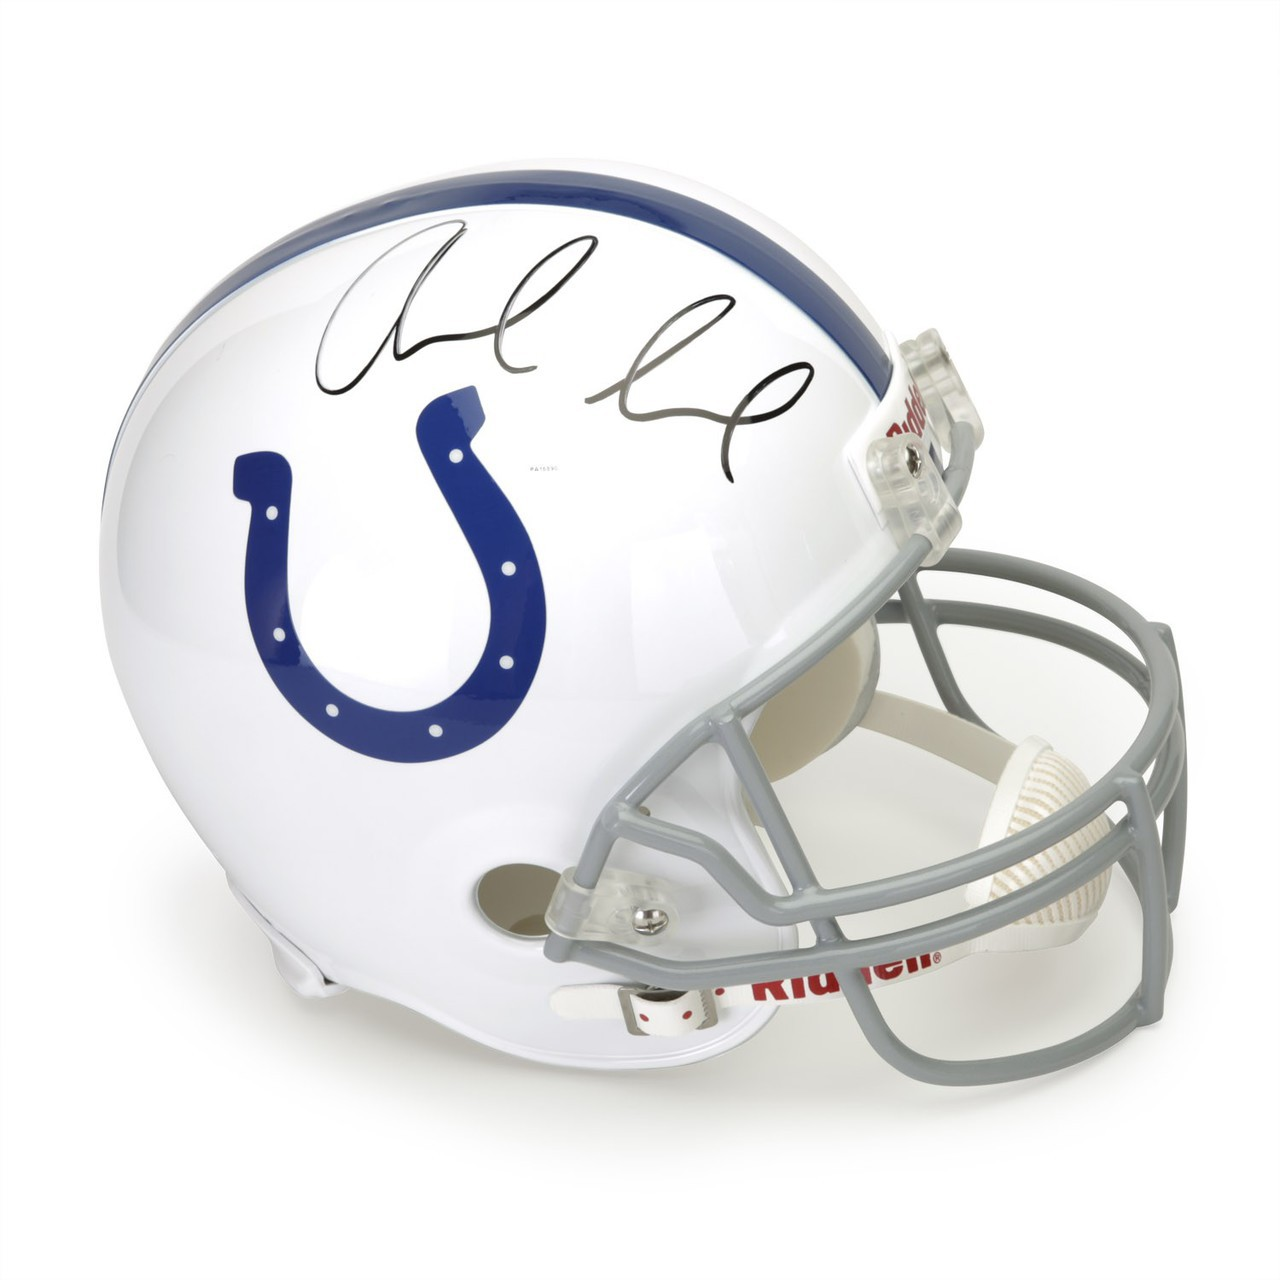 Andrew Luck Hand Signed Indianapolis Colts Helmet, Panini Authenticated